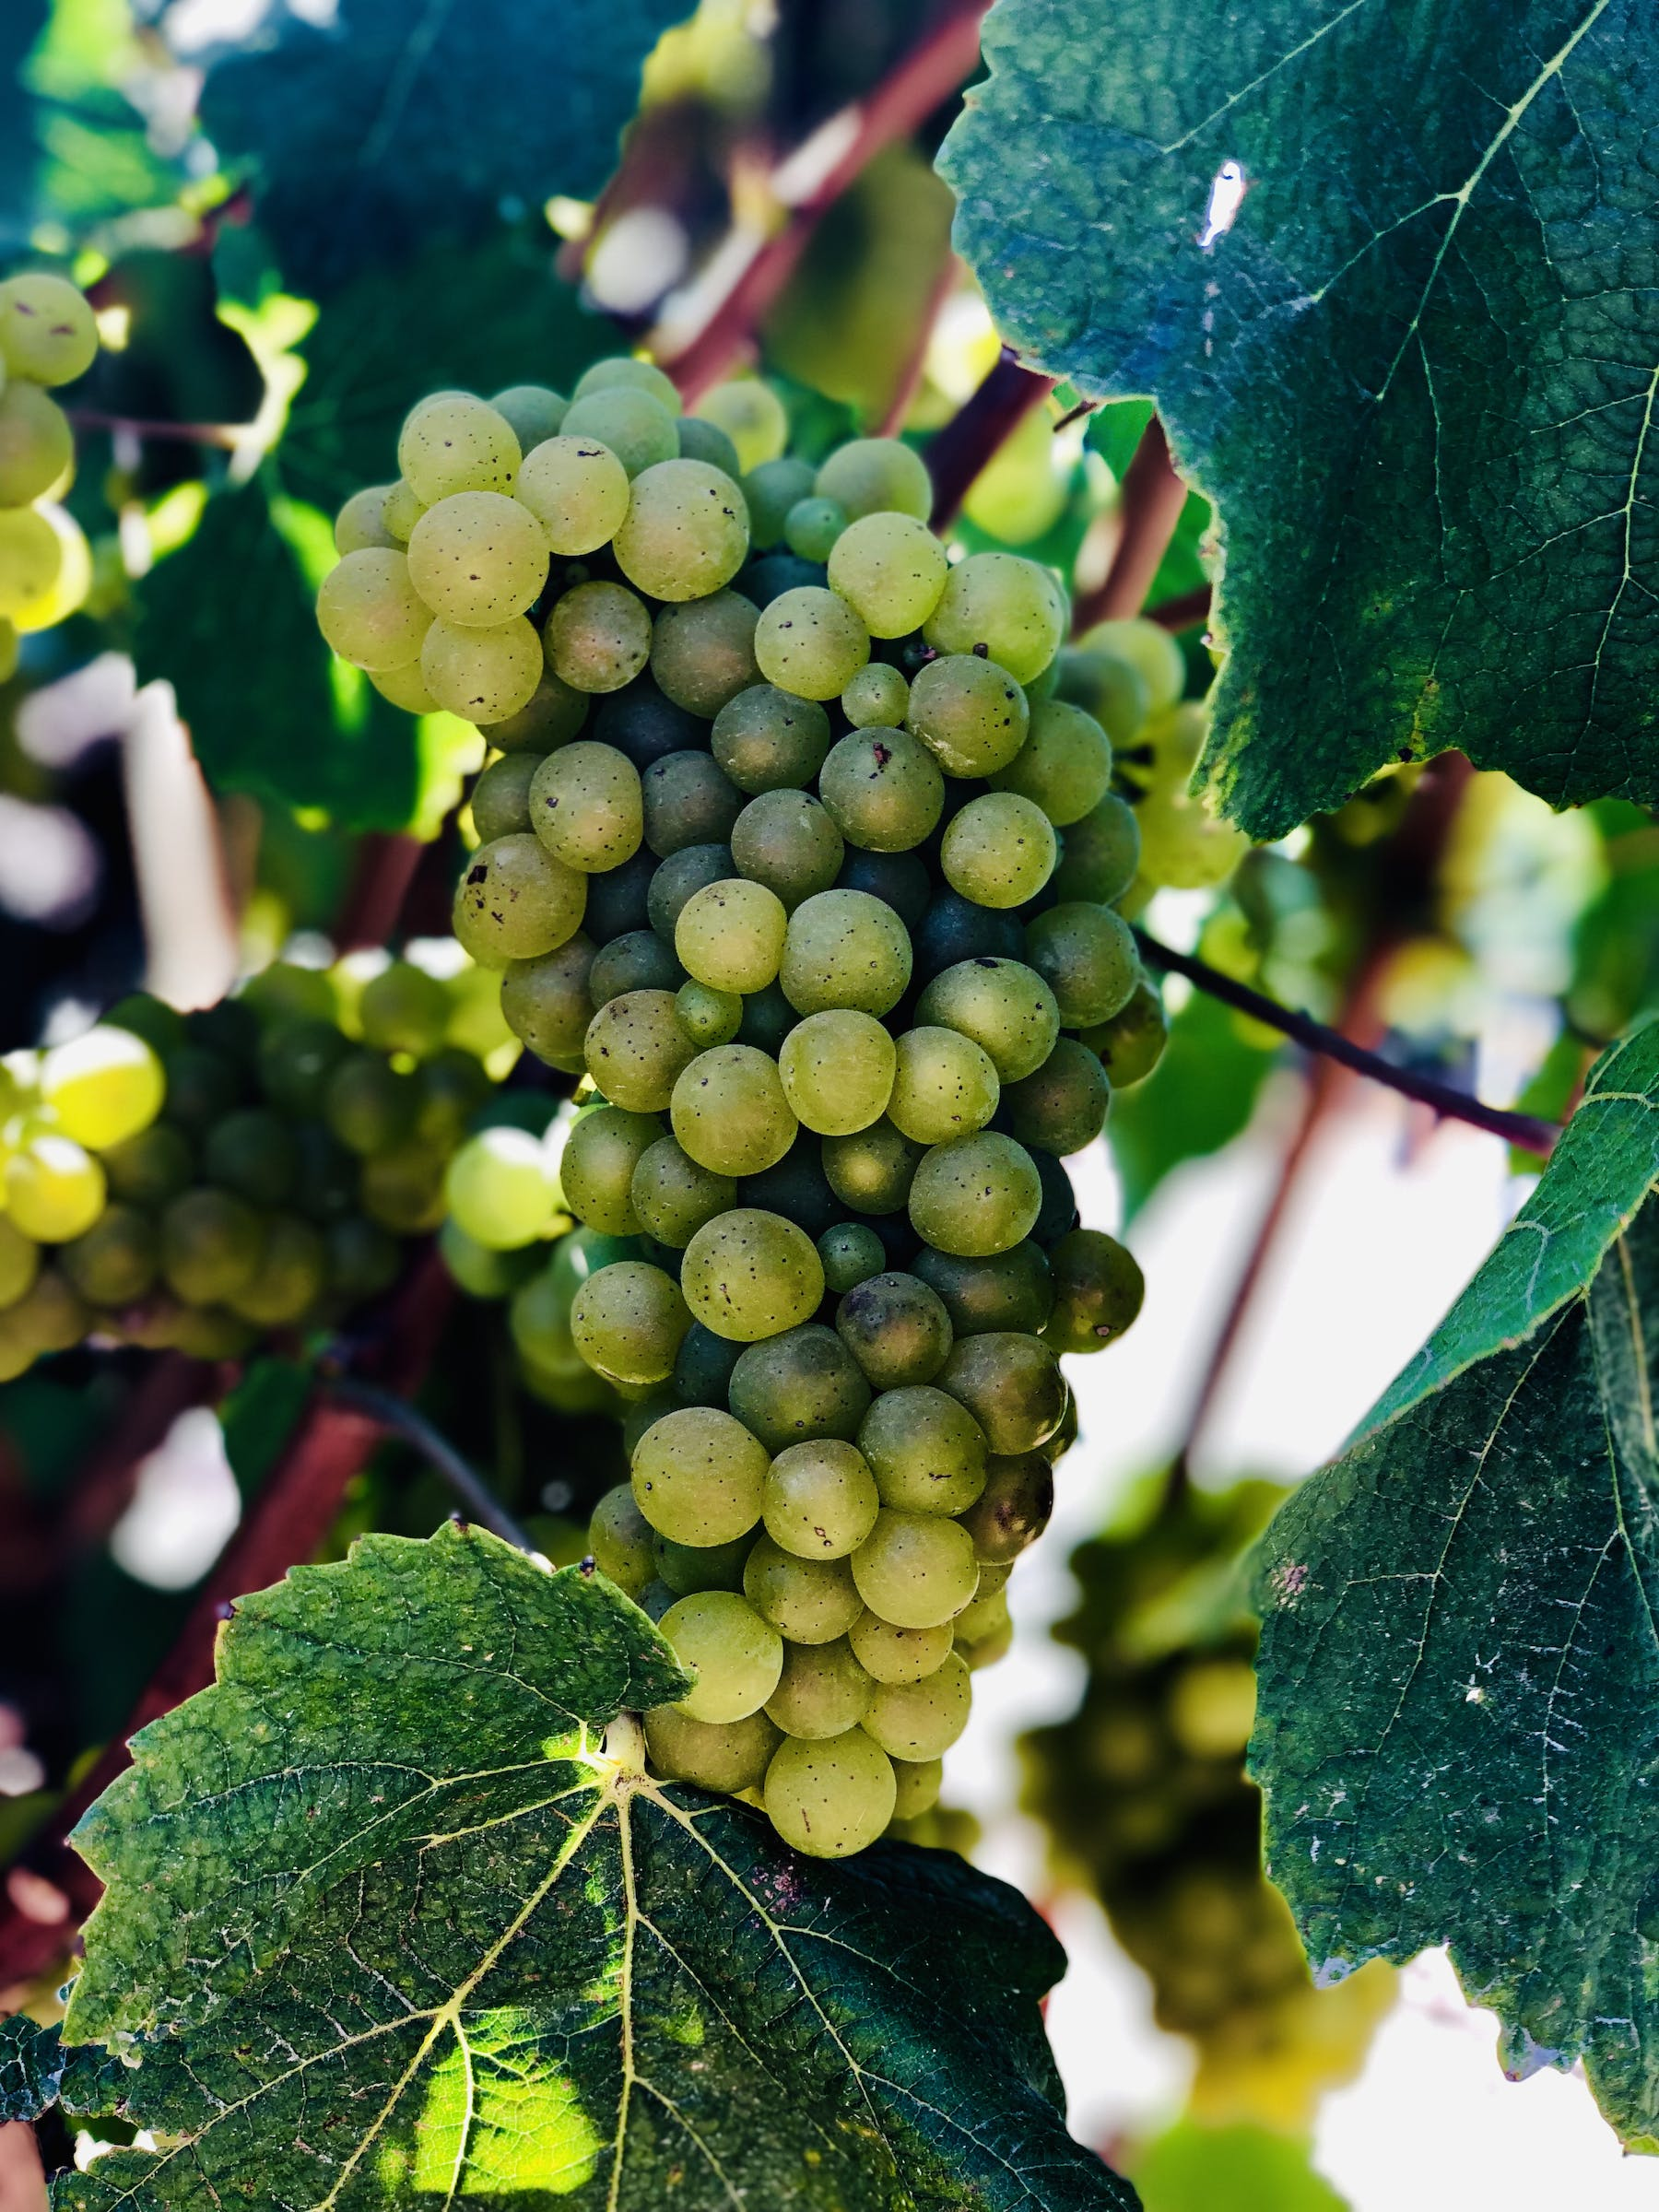 a close up of wine grapes